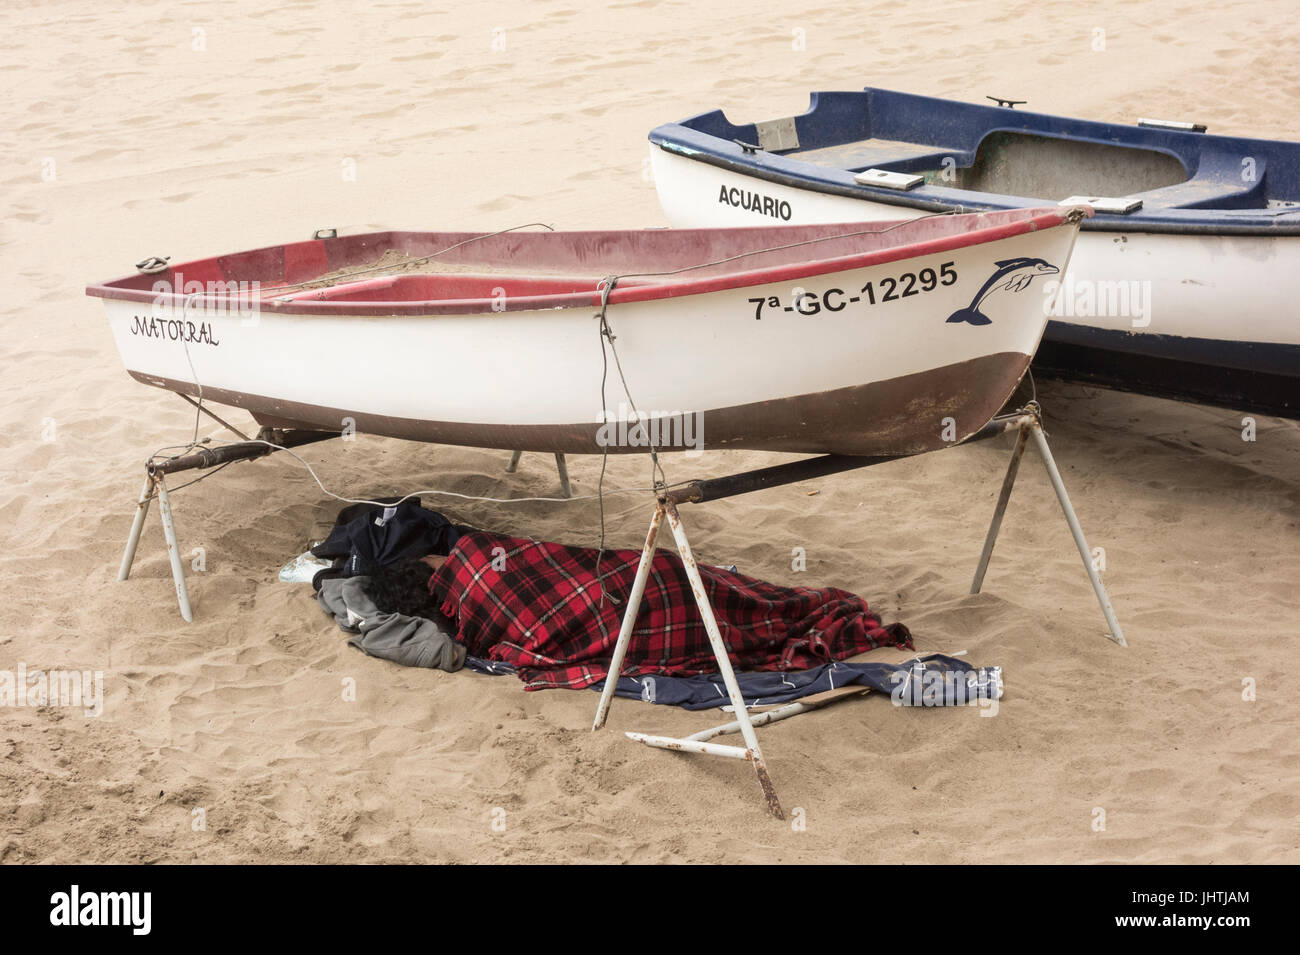 Homeless person sleeping under boat on beach in Spain - Stock Image